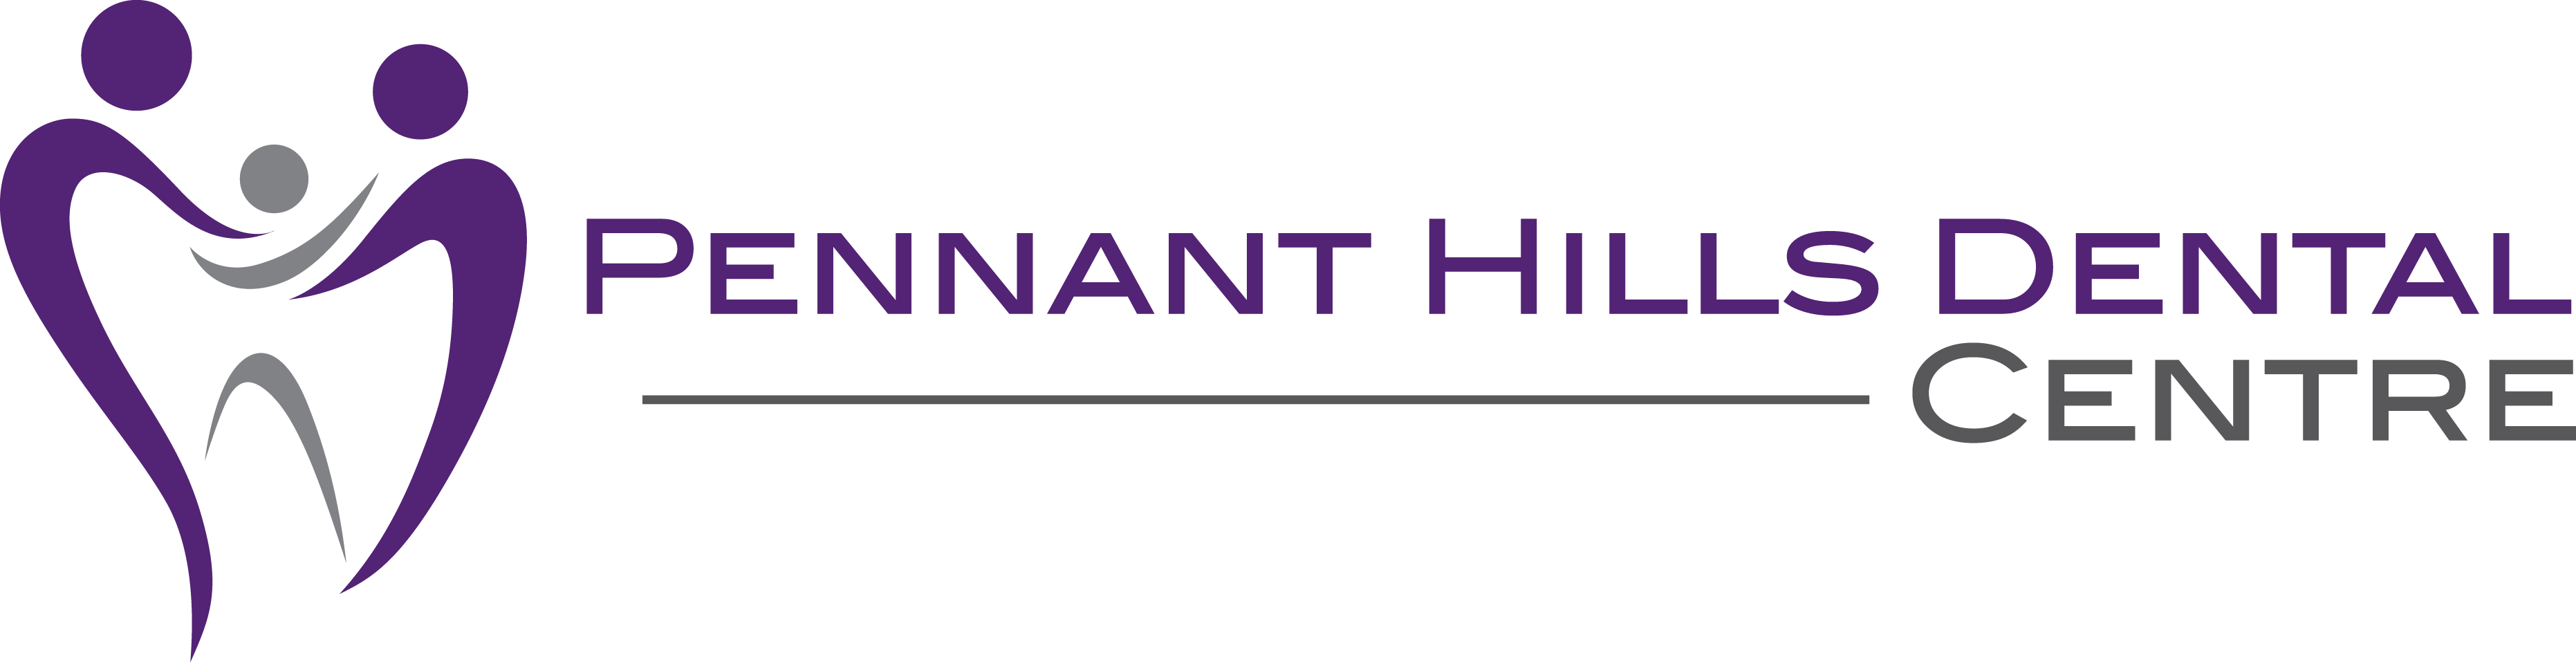 Pennant Hills Dental Centre Logo